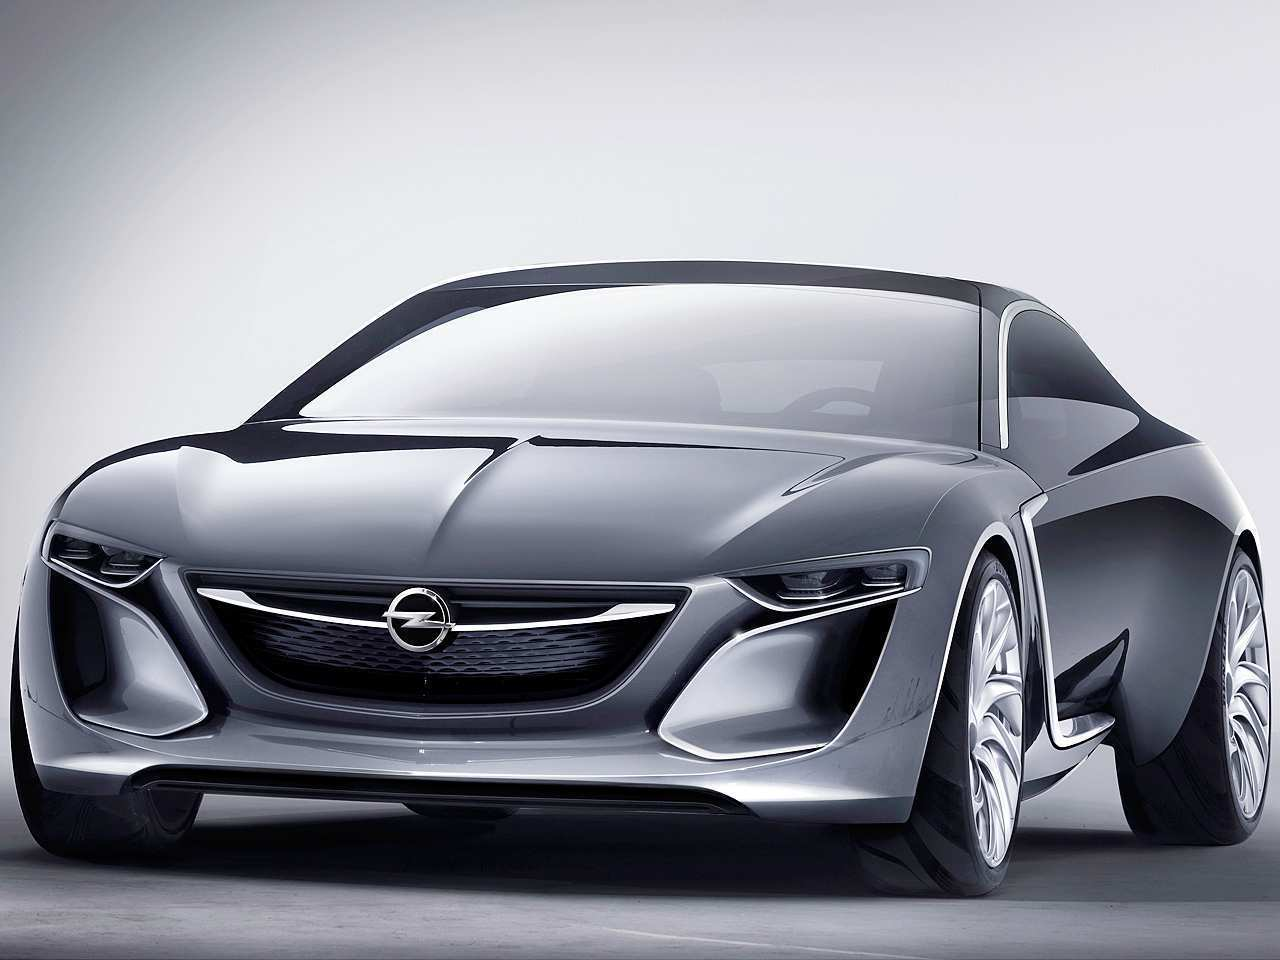 62 New Opel Monza 2019 First Drive for Opel Monza 2019